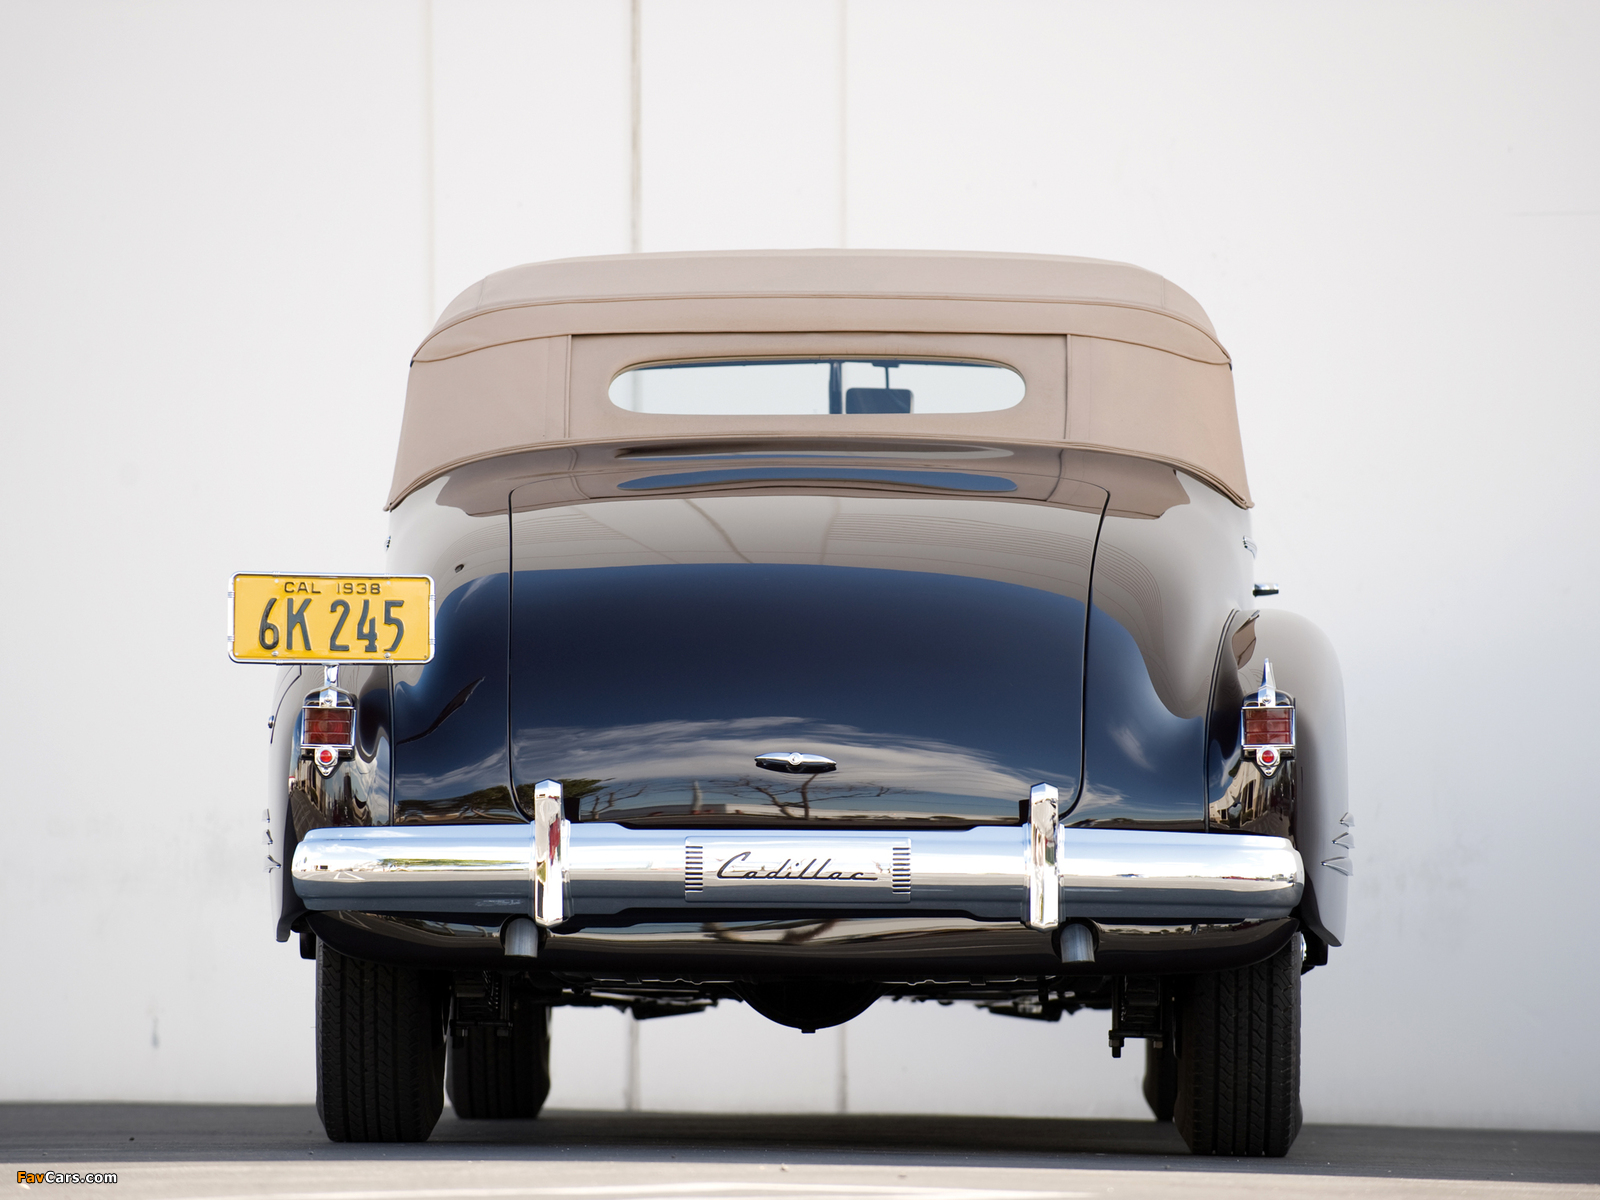 Cadillac V16 Series 90 Convertible Coupe 1938 images (1600 x 1200)